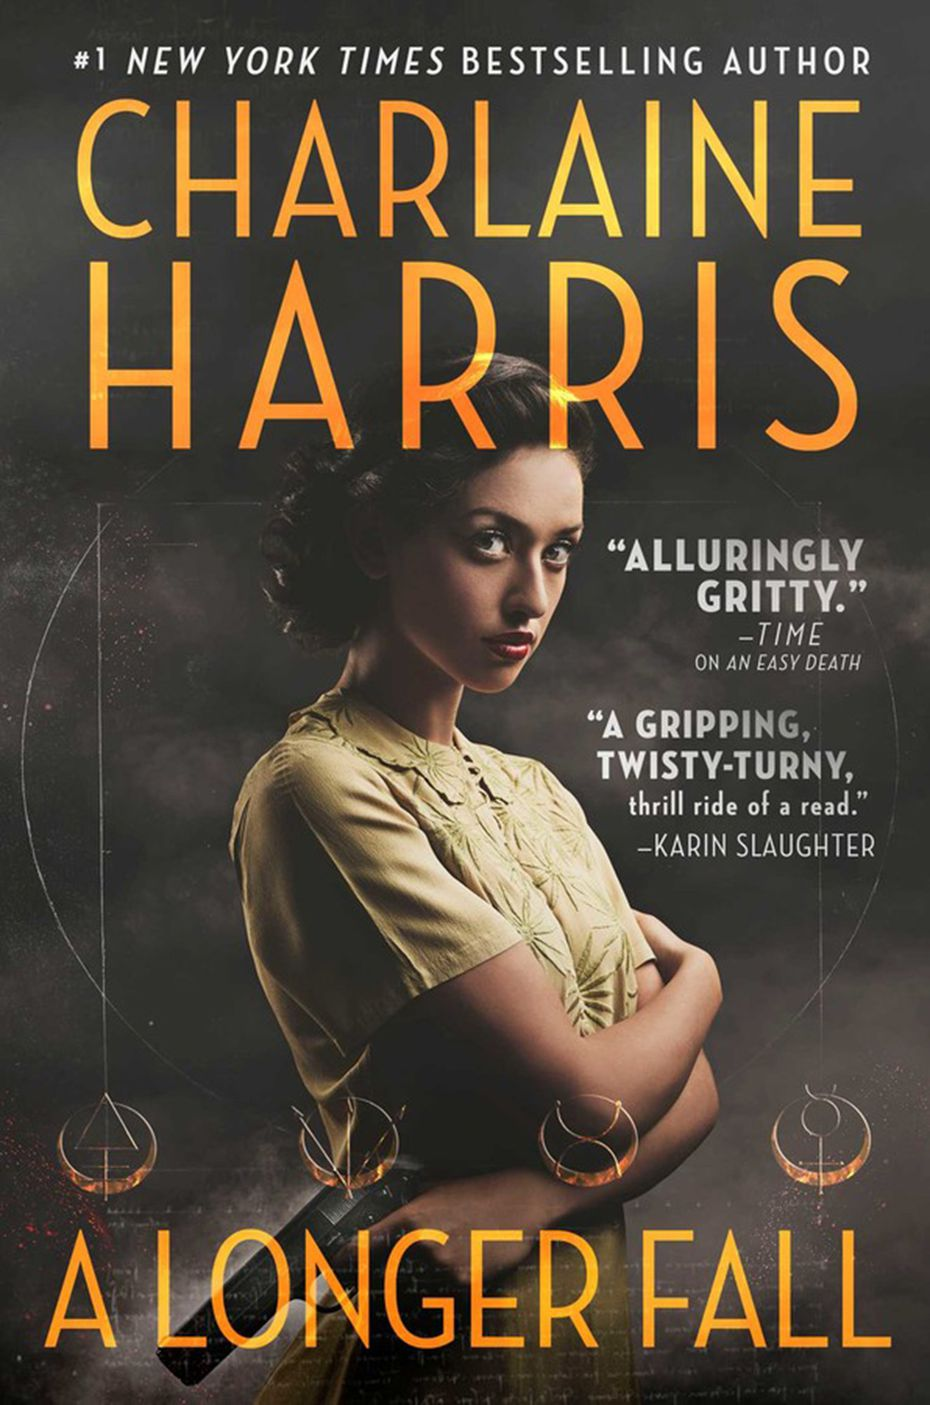 """A Longer Fall"" by Charlaine Harris incorporates elements of the Western, science fiction, mystery and magical realism genres."